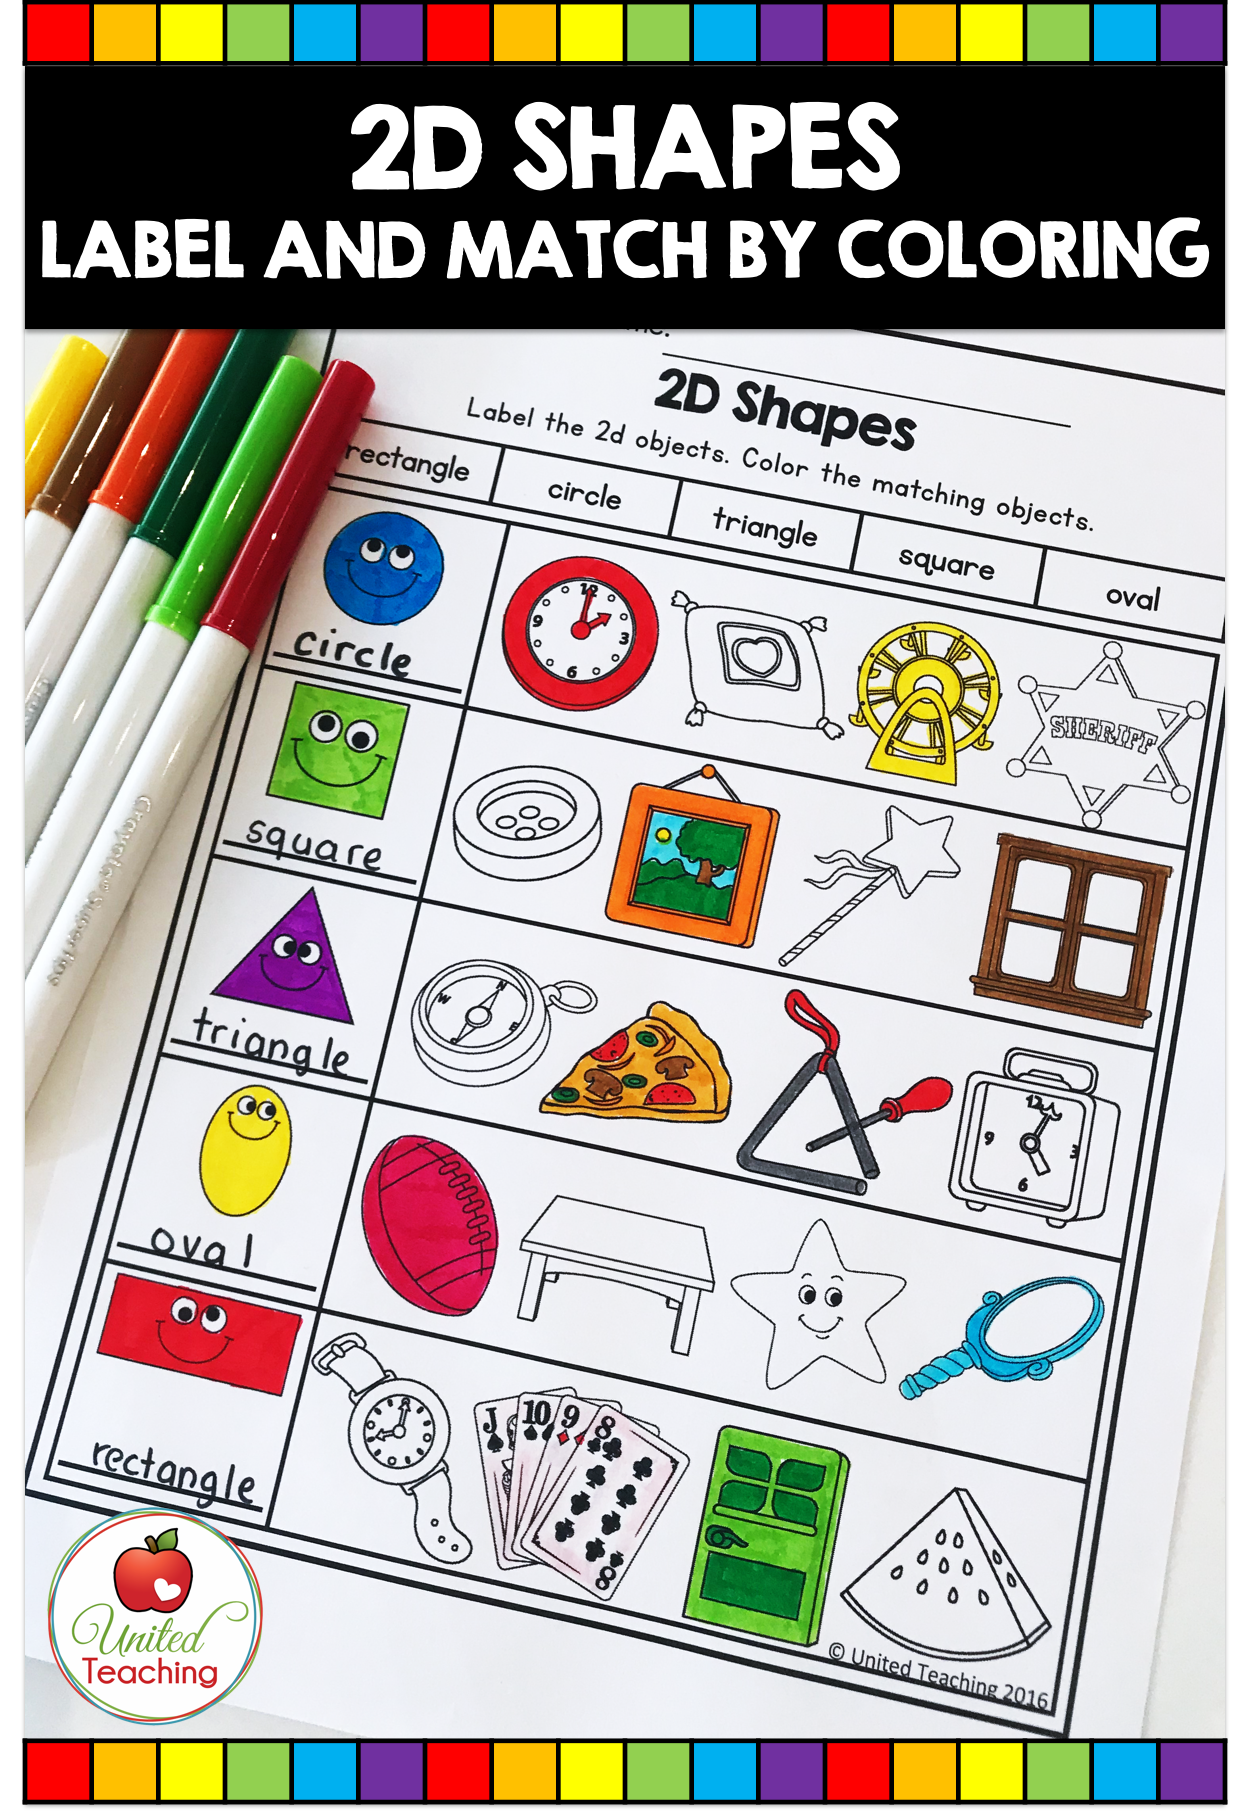 hight resolution of FALL MATH ACTIVITIES (1ST GRADE) - United Teaching   Shapes worksheets